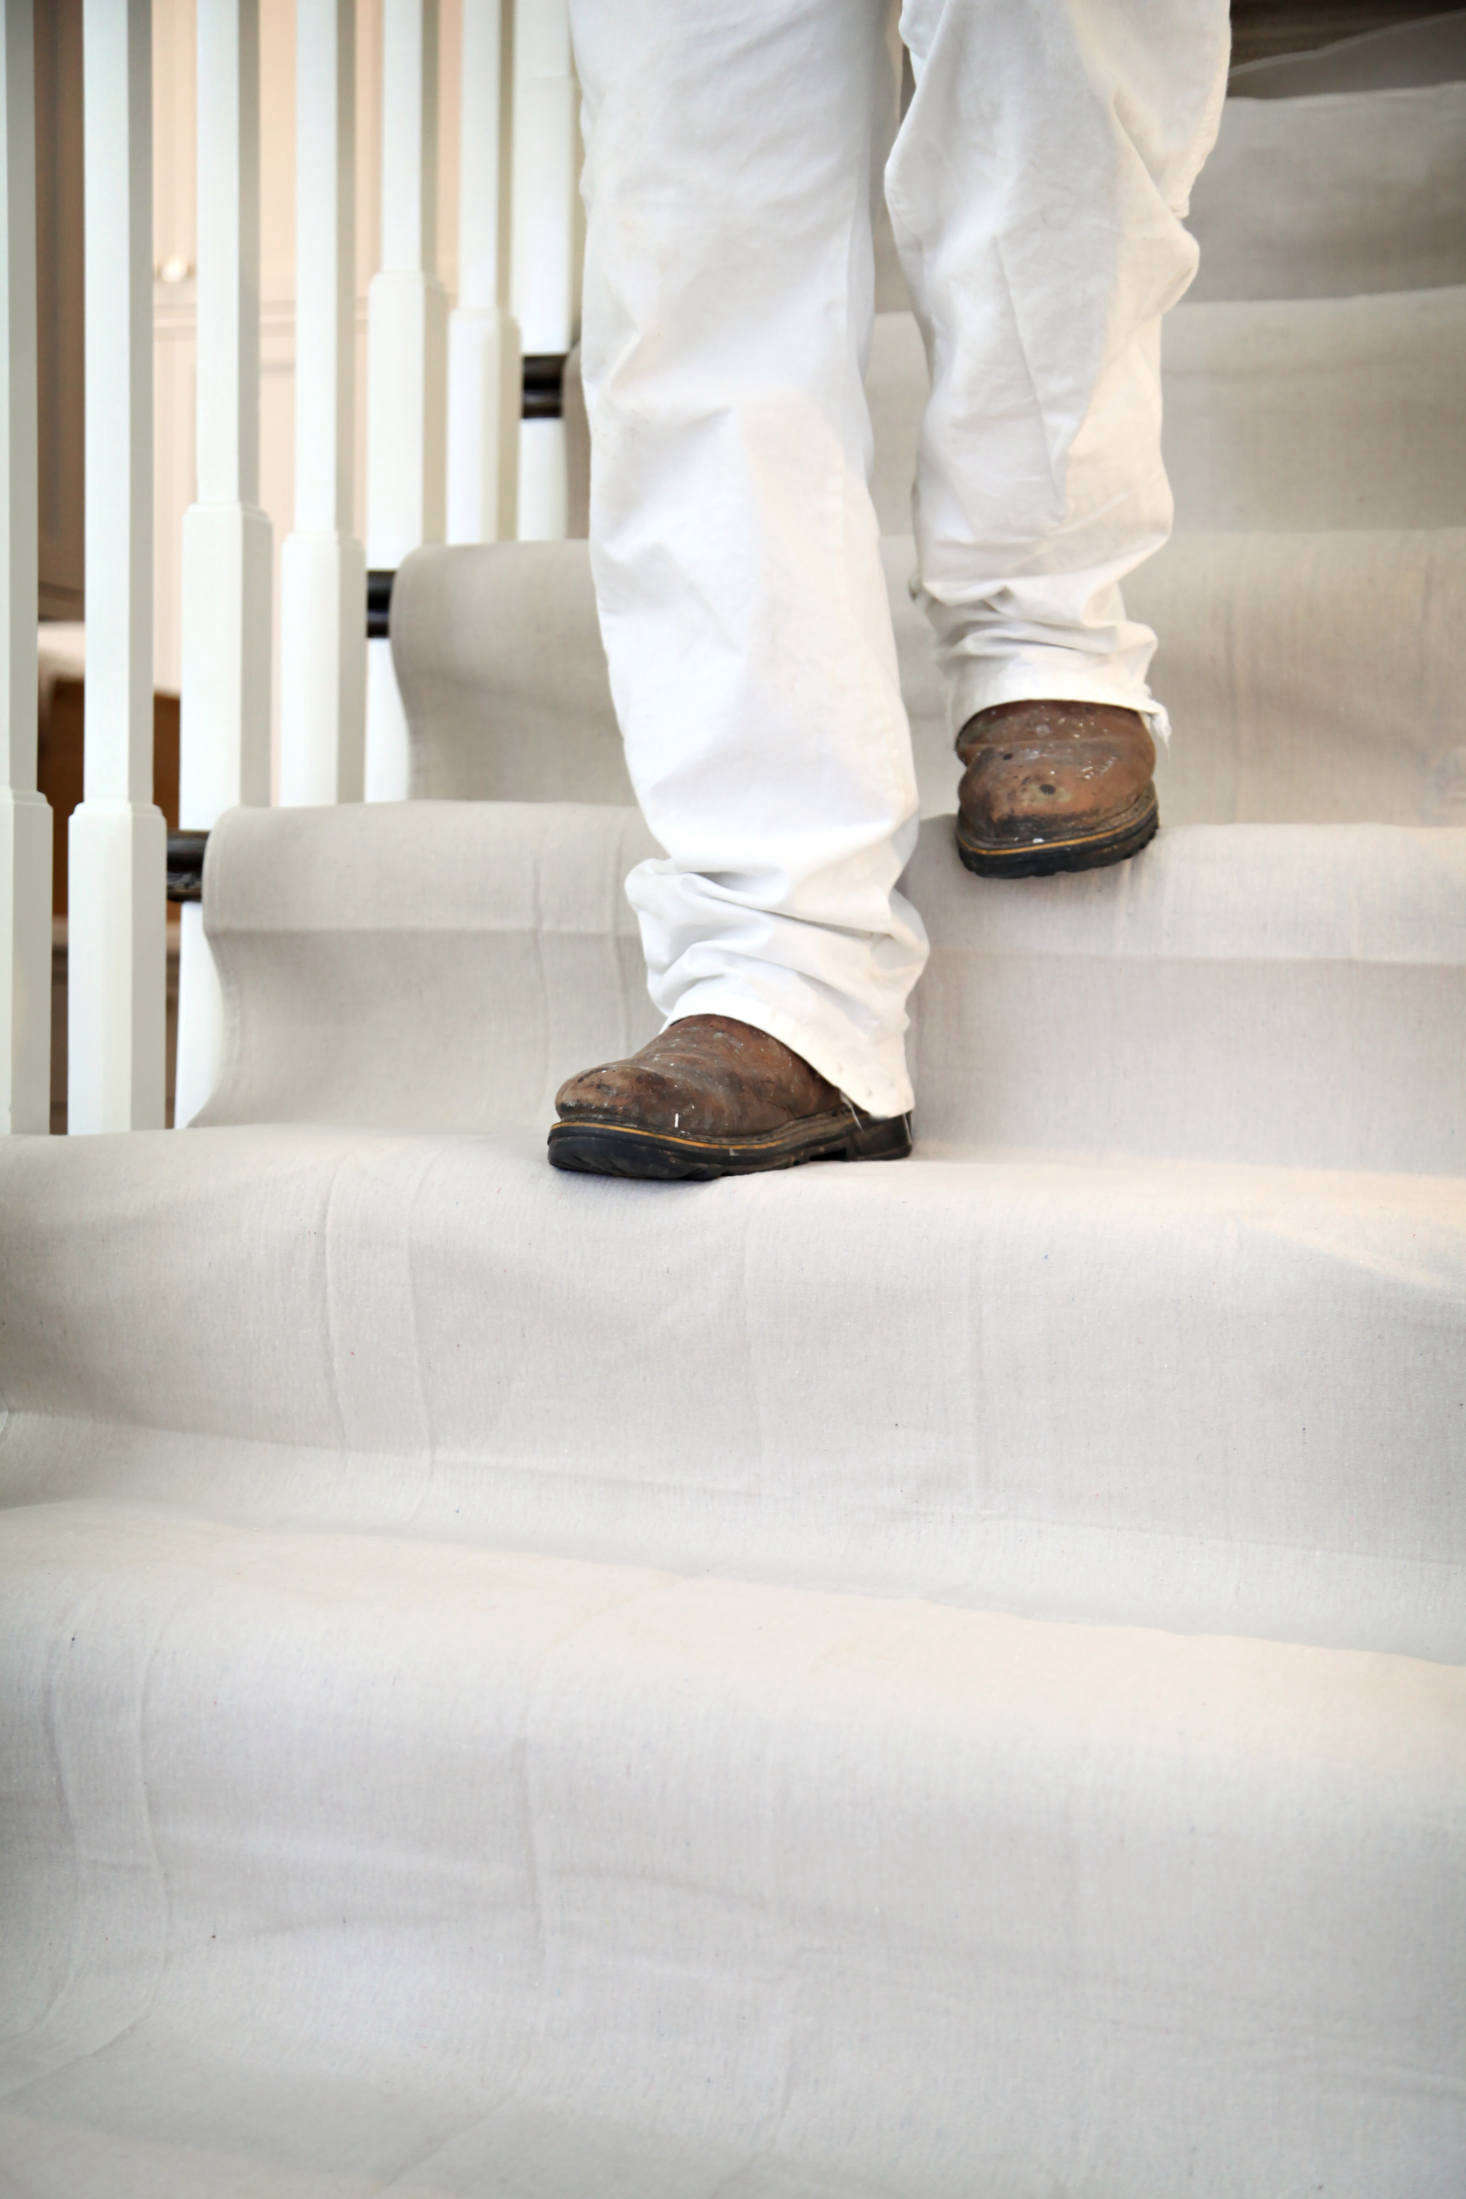 Trimaco's Stay Put Canvas Dropcloths have three layers: a layer of absorbent canvas, a leak-resistant plastic layer, and a nonslip backing that makes the dropcloth 300 percent more slip-resistant than standard eight-ounce canvas.